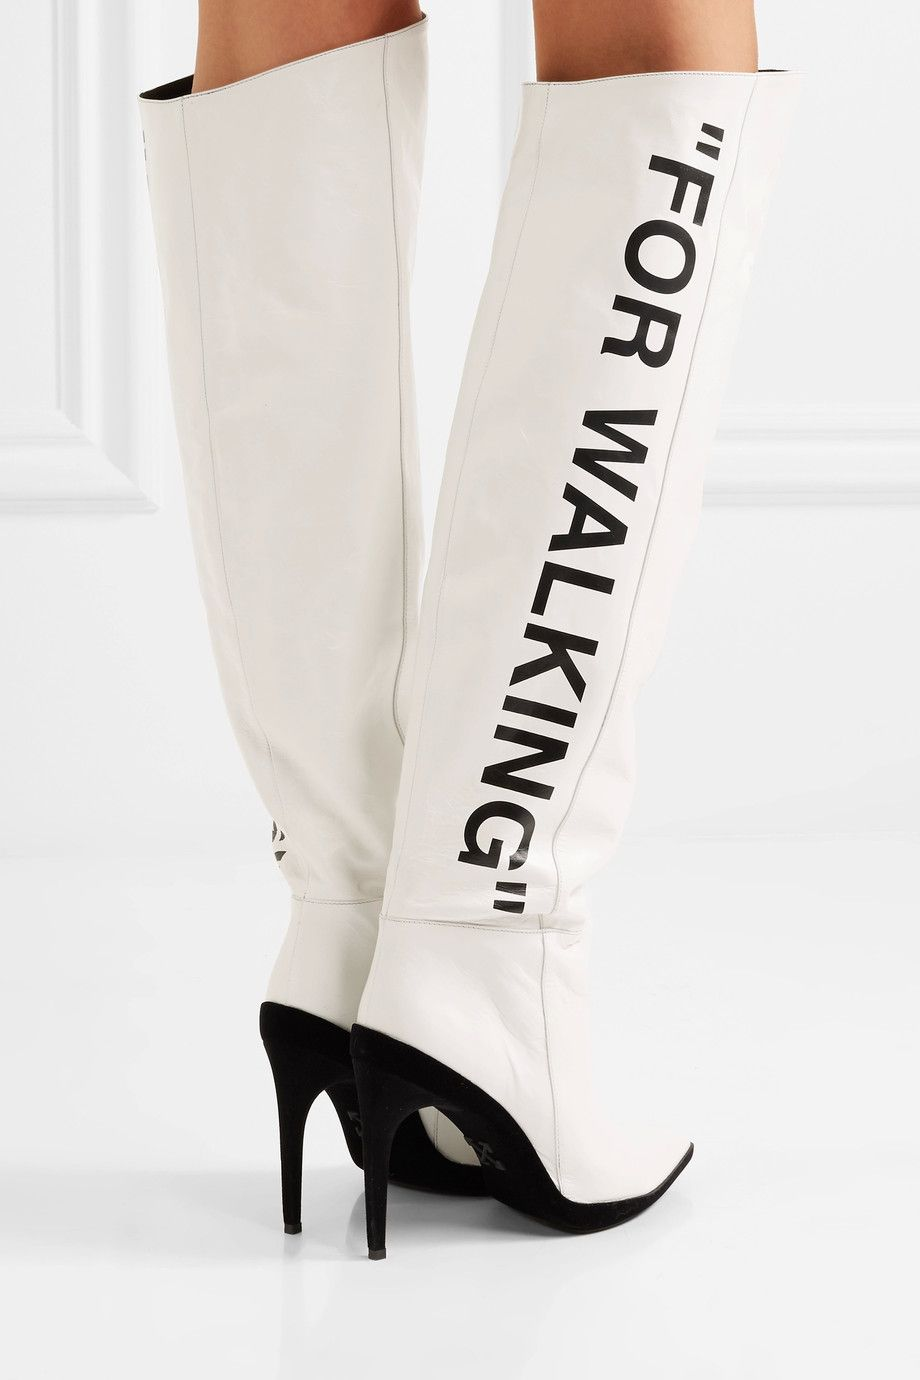 Off-White - For Walking printed leather over-the-knee boots